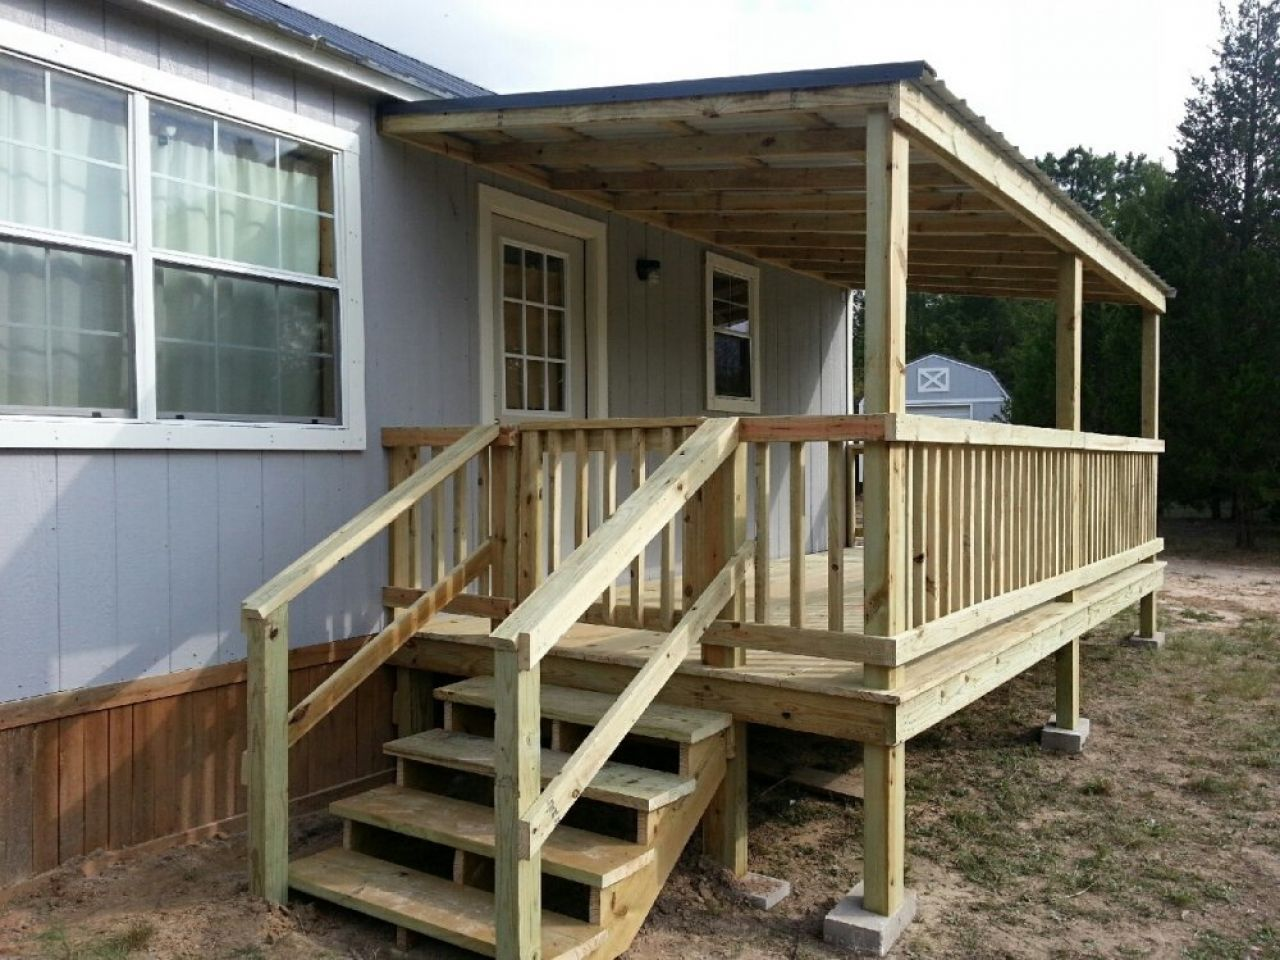 23 Amazing Covered Deck Ideas To Inspire You Check It Out Decks Ideas Tags Covered Deck Ideas On A Budget Deck Design Plans Free Deck Plans Building A Deck